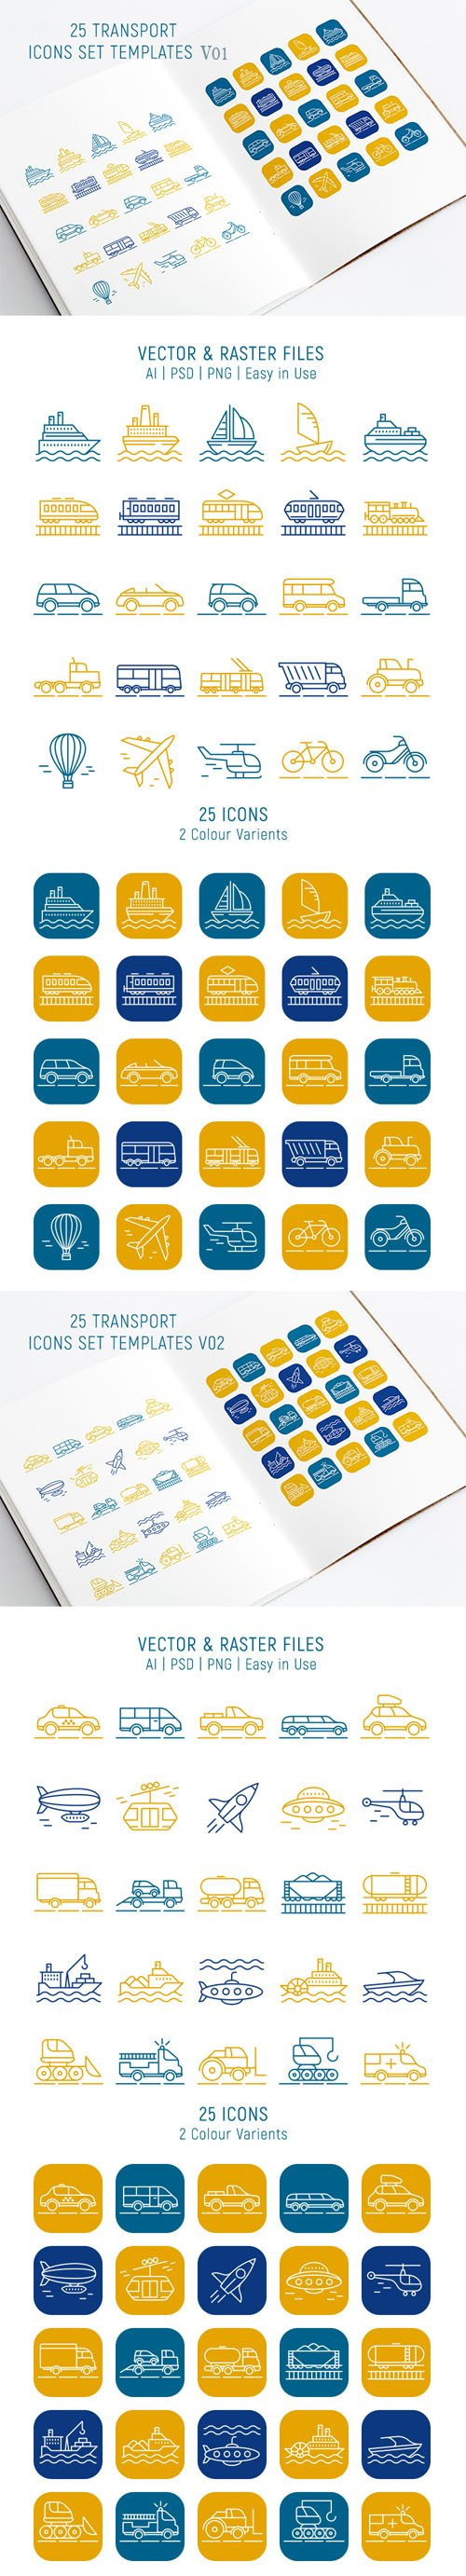 100 Transport Icons Templates